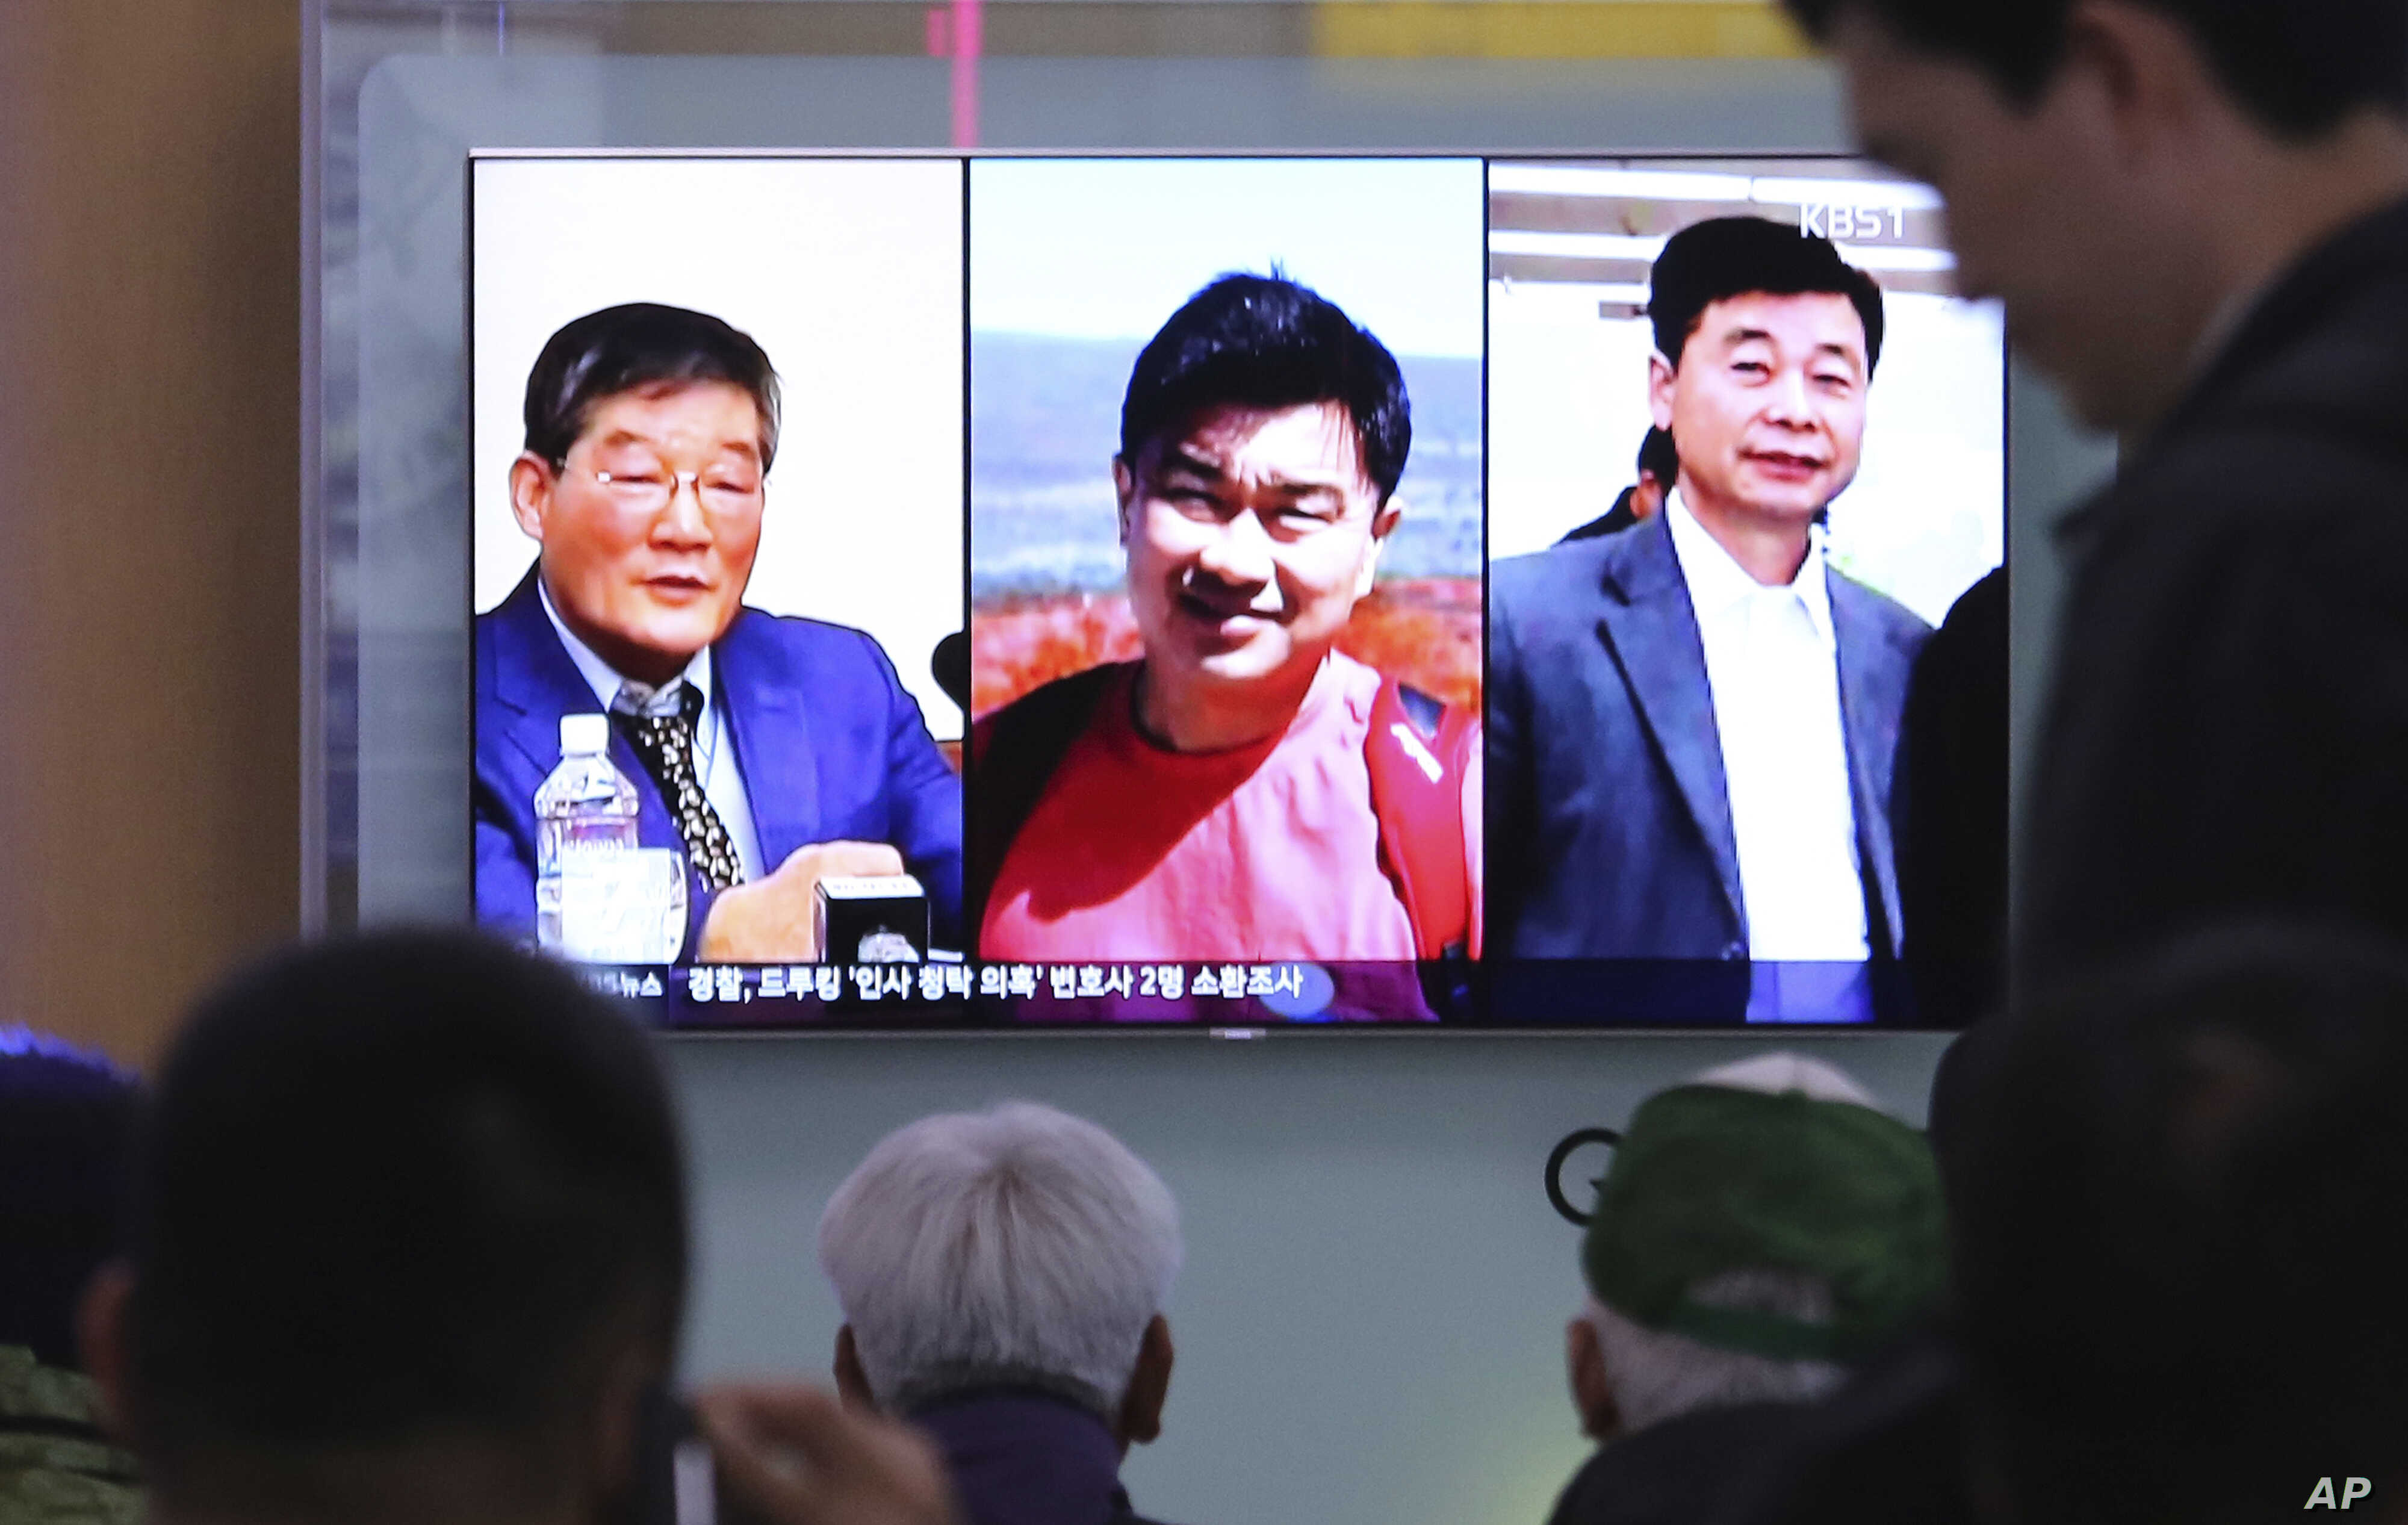 People watch a TV news report on screen, showing portraits of three Americans, Kim Dong Chul (L), Tony Kim, and Kim Hak Song (R) detained in the North Korea at the Seoul Railway Station in Seoul, South Korea, May 3, 2018.